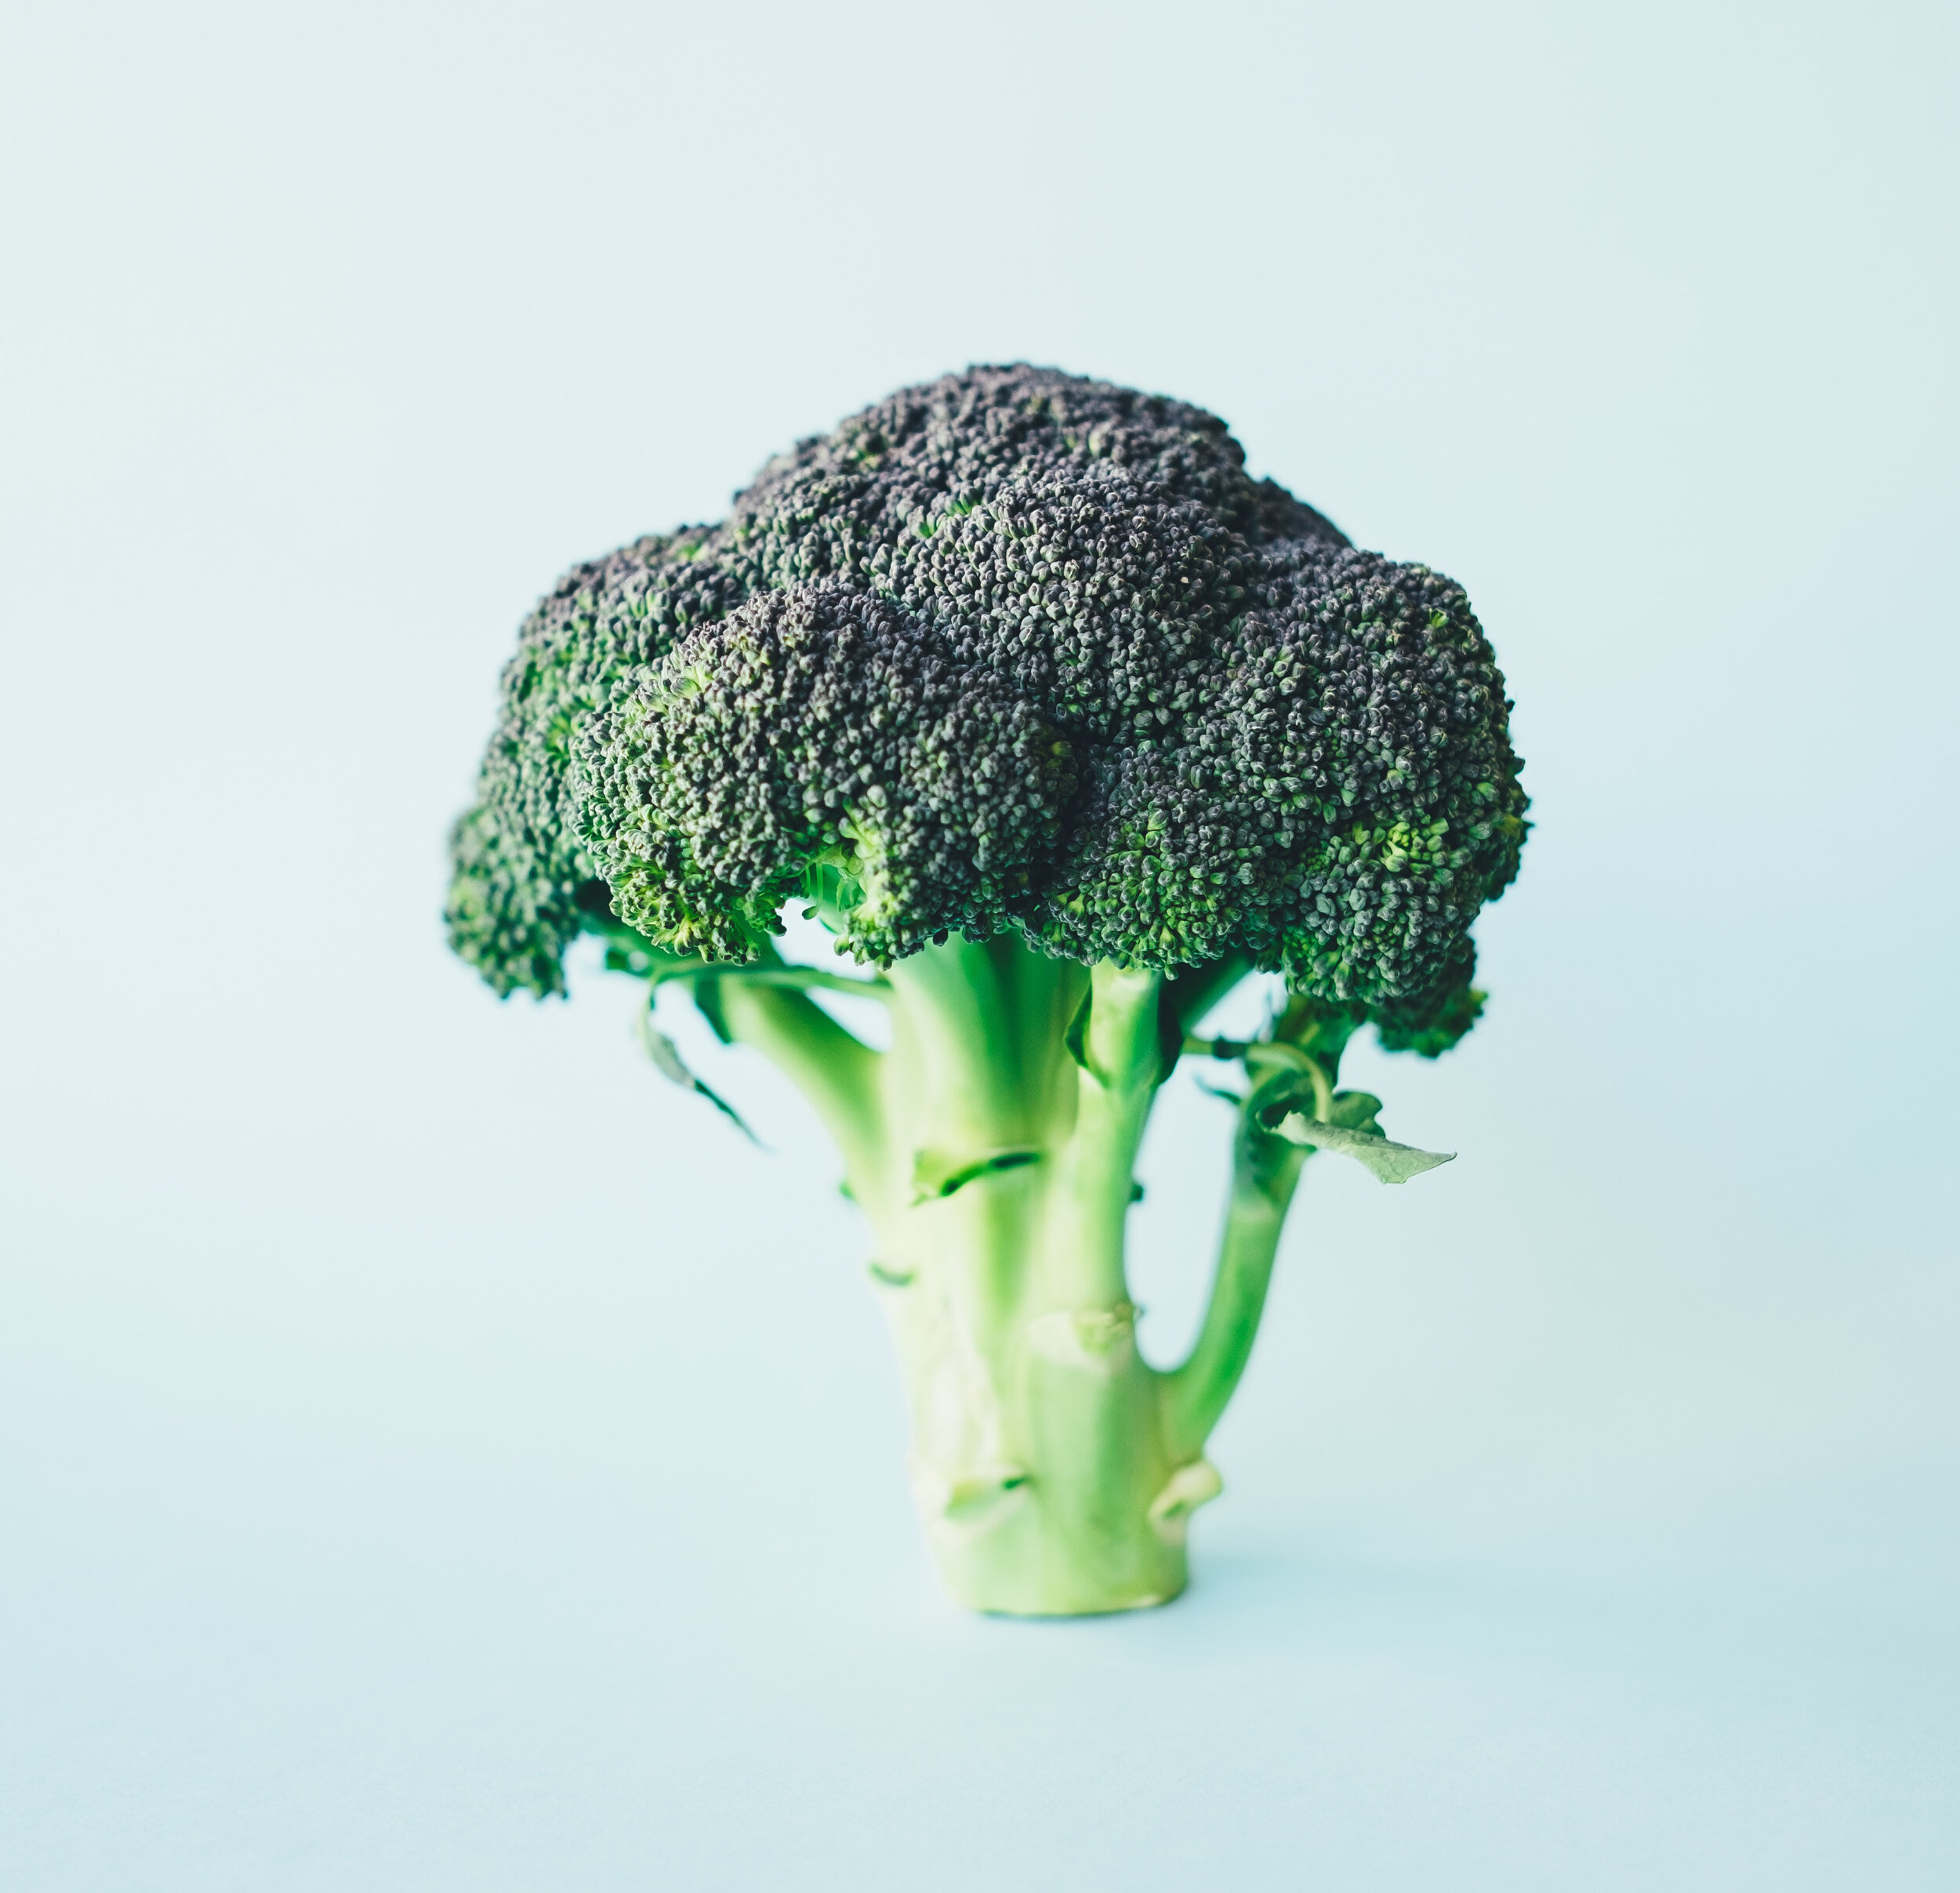 Foods that will save the planet article. Image of broccoli.jpg